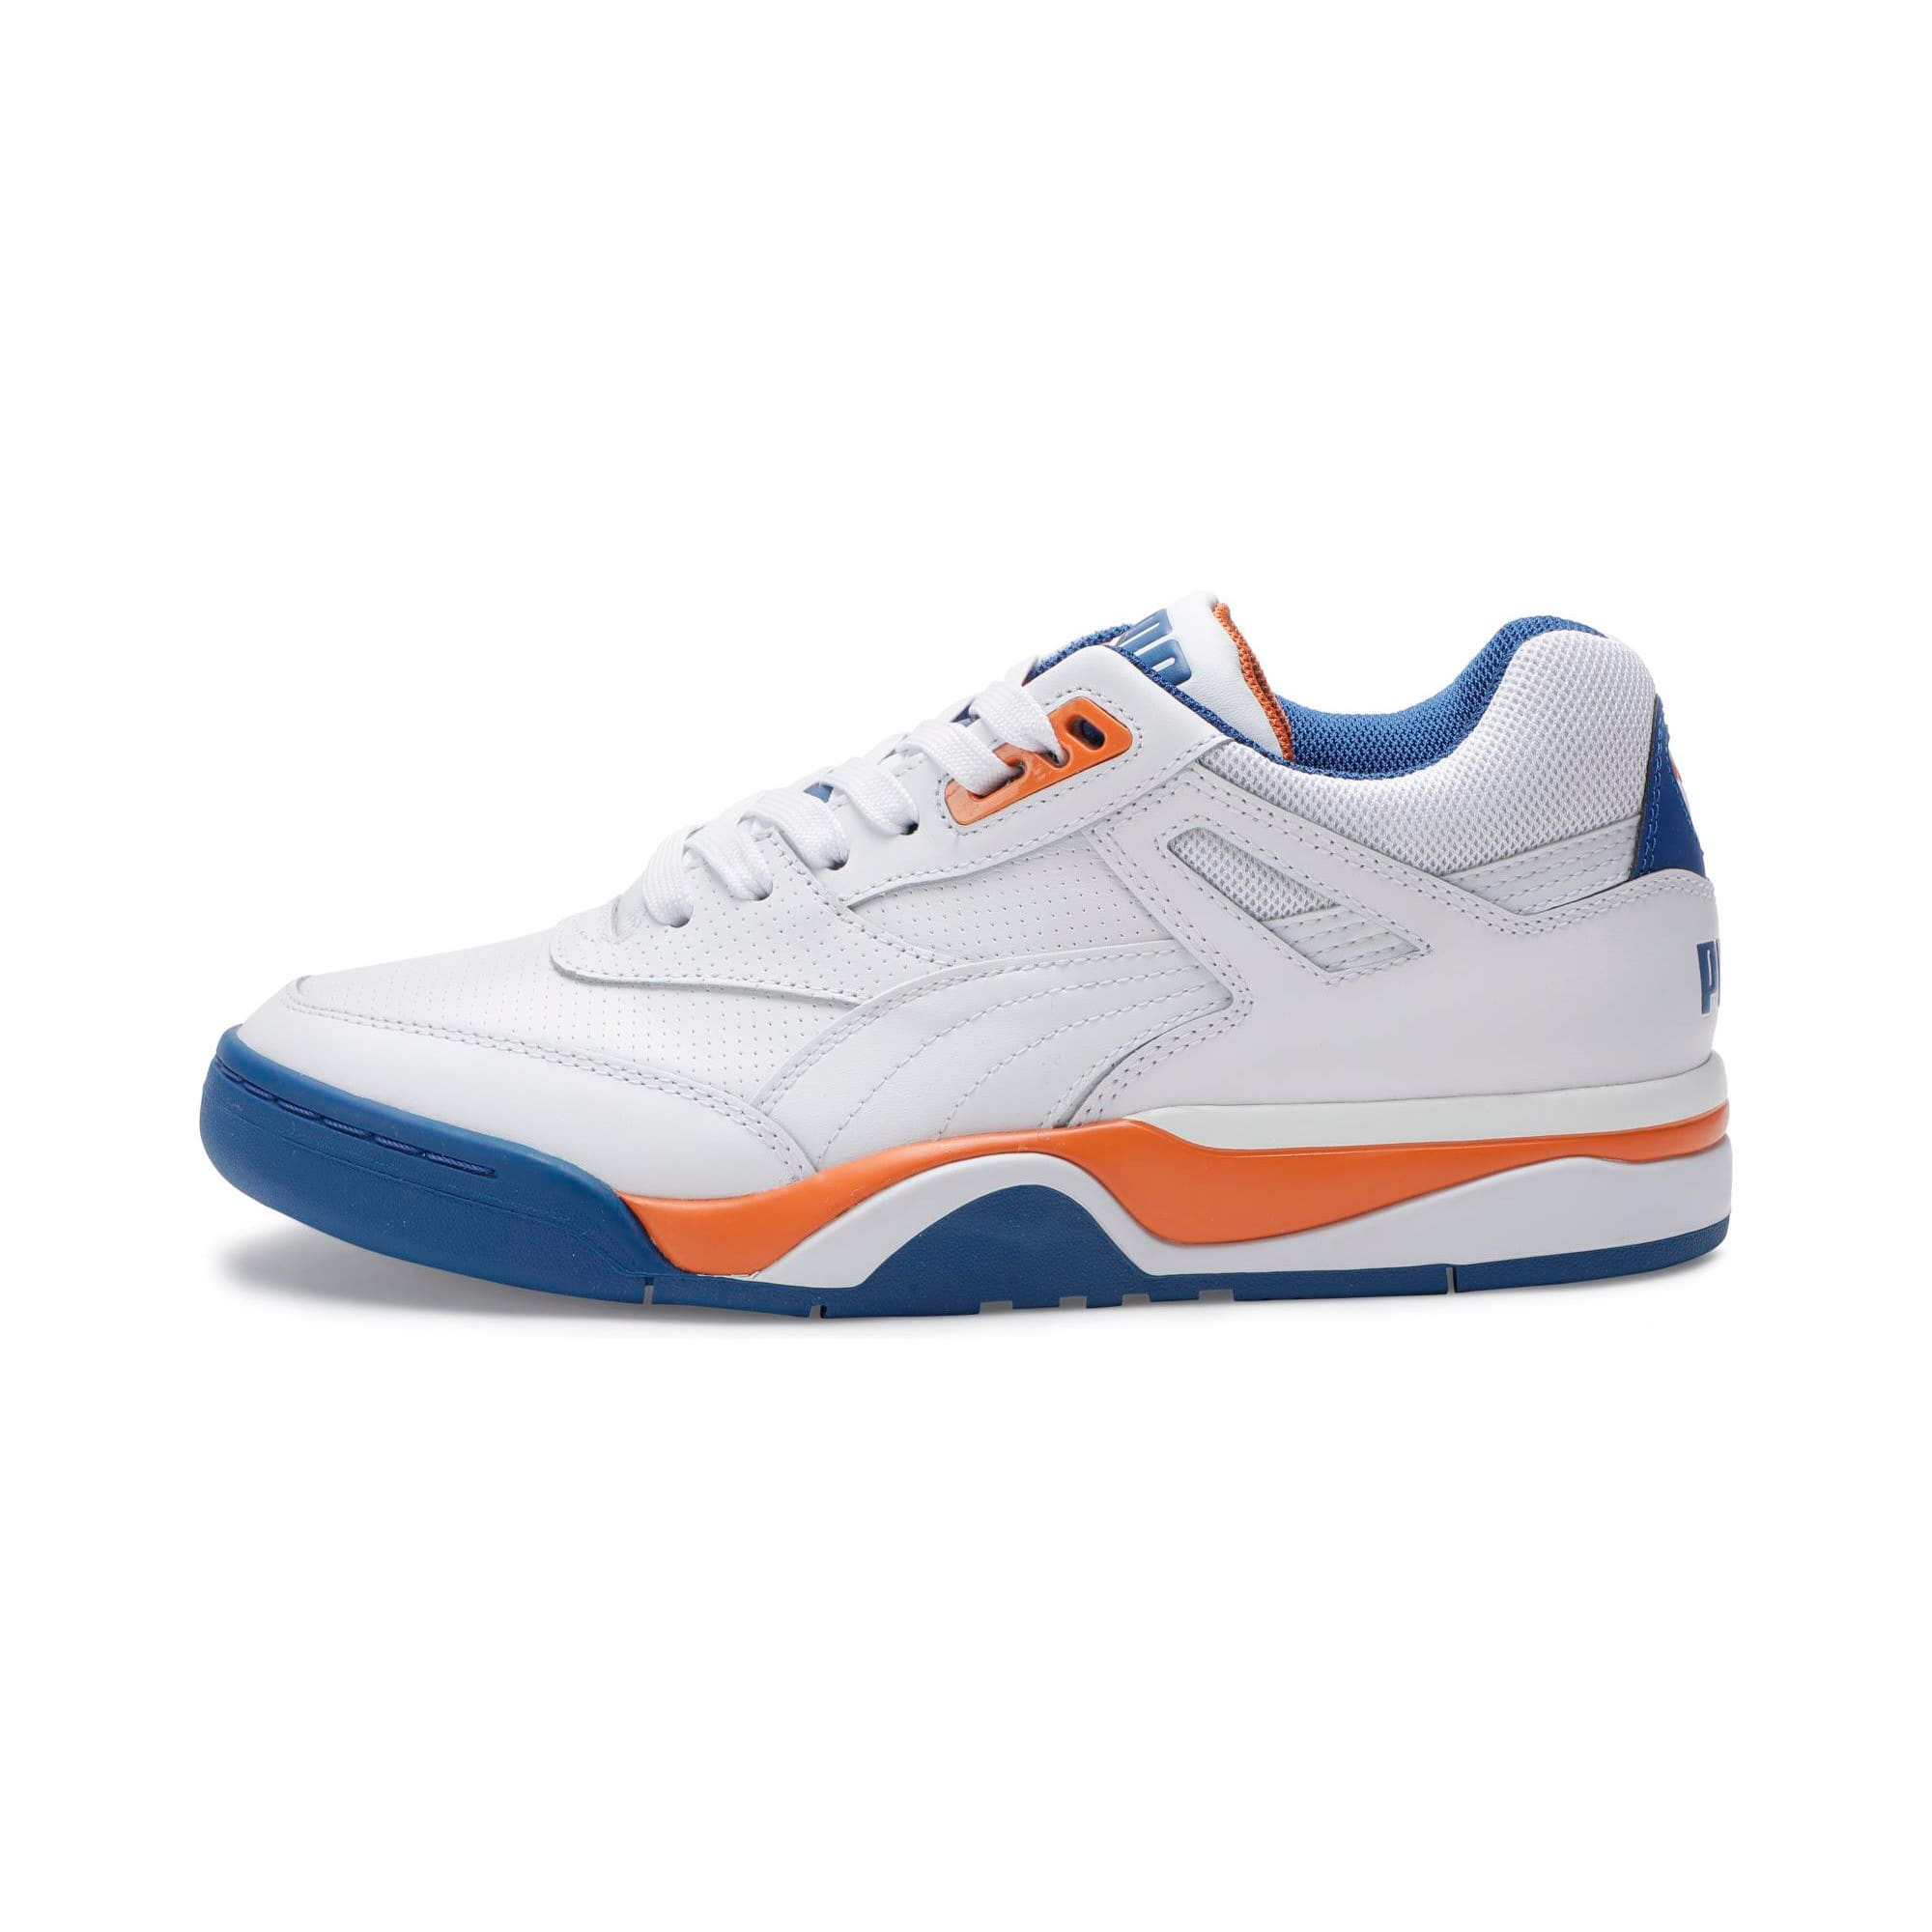 Thumbnail 1 of Palace Guard Men's Basketball Trainers, P White-Jaffa Orange-G Blue, medium-IND